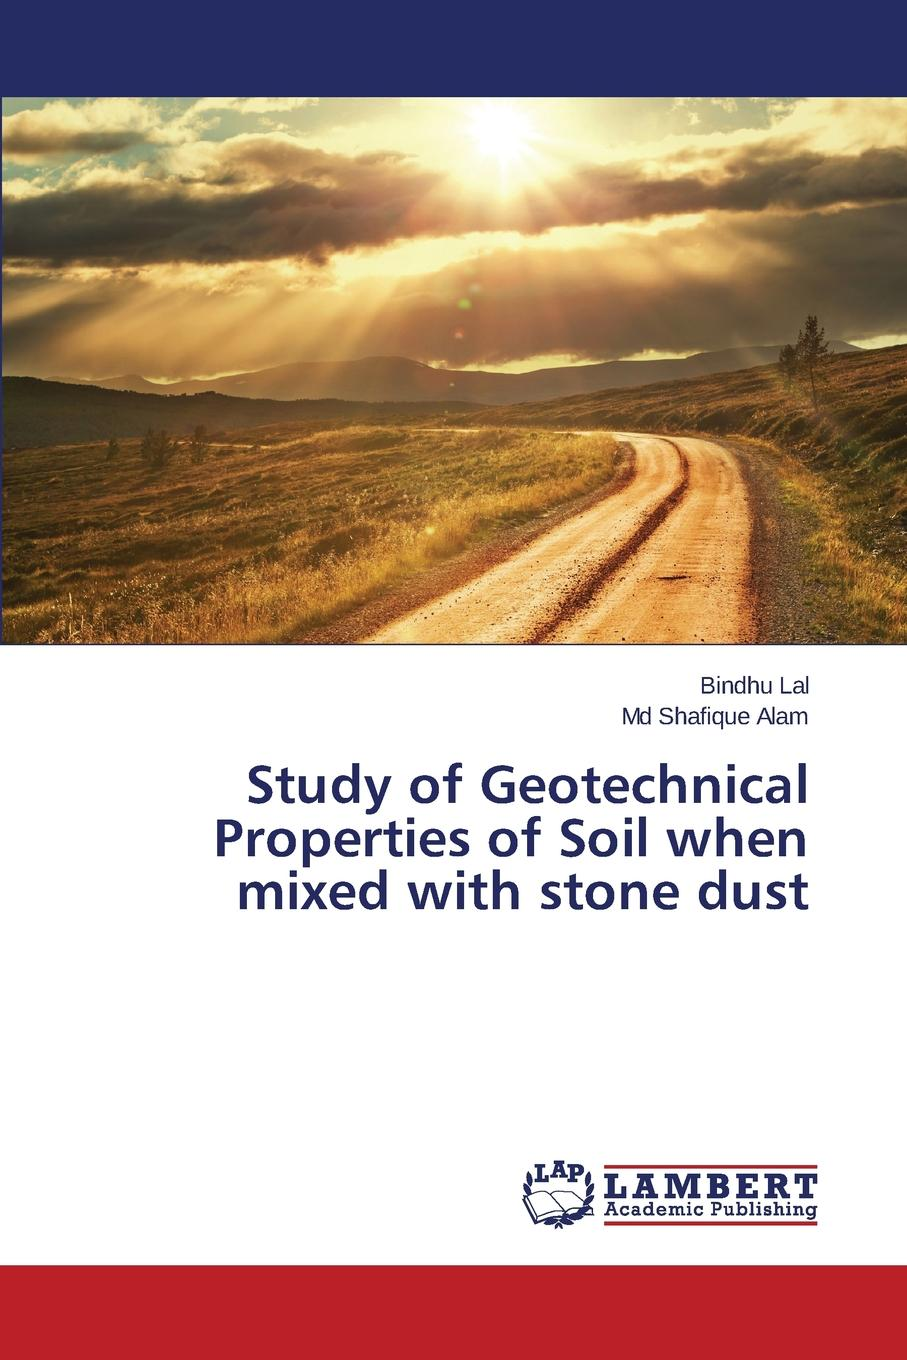 Lal Bindhu, Alam Md Shafique Study of Geotechnical Properties of Soil when mixed with stone dust 280w random orbit sander with 15 sheets of sandpaper dust exhaust and hybrid dust canister